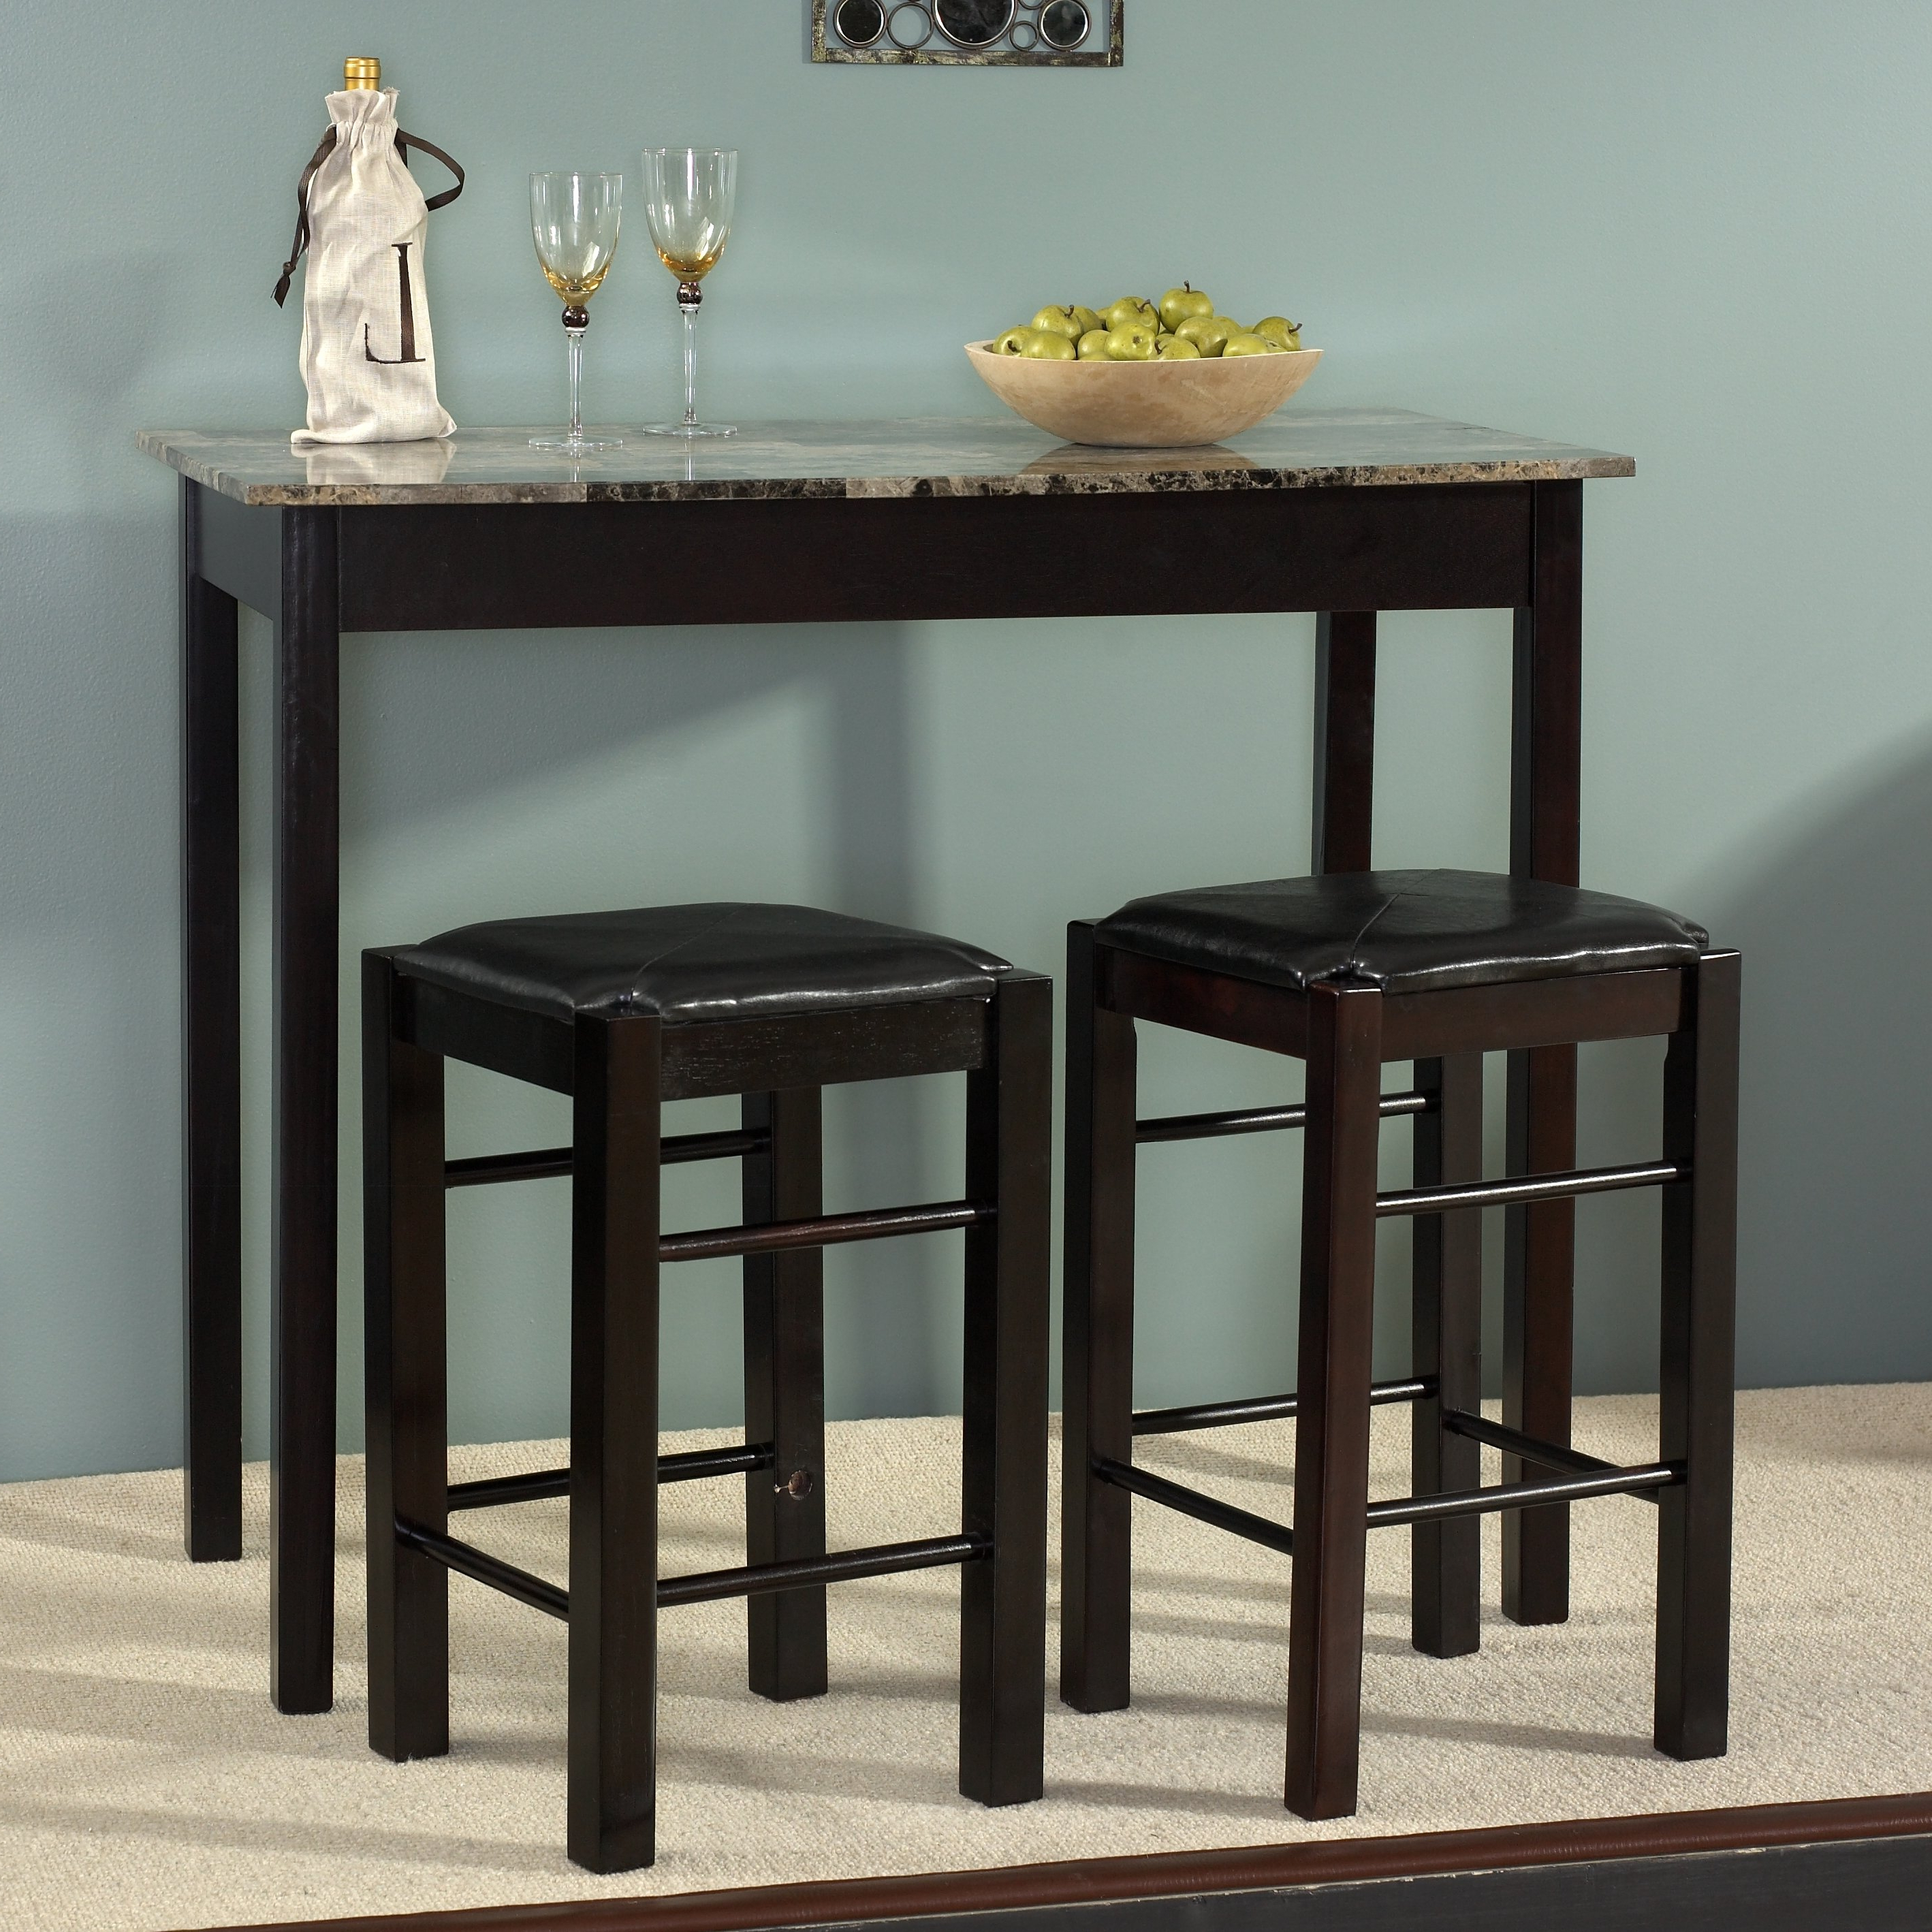 Sheetz 3 Piece Counter Height Dining Sets Throughout Most Recent Sheetz 3 Piece Counter Height Dining Set & Reviews (View 21 of 25)